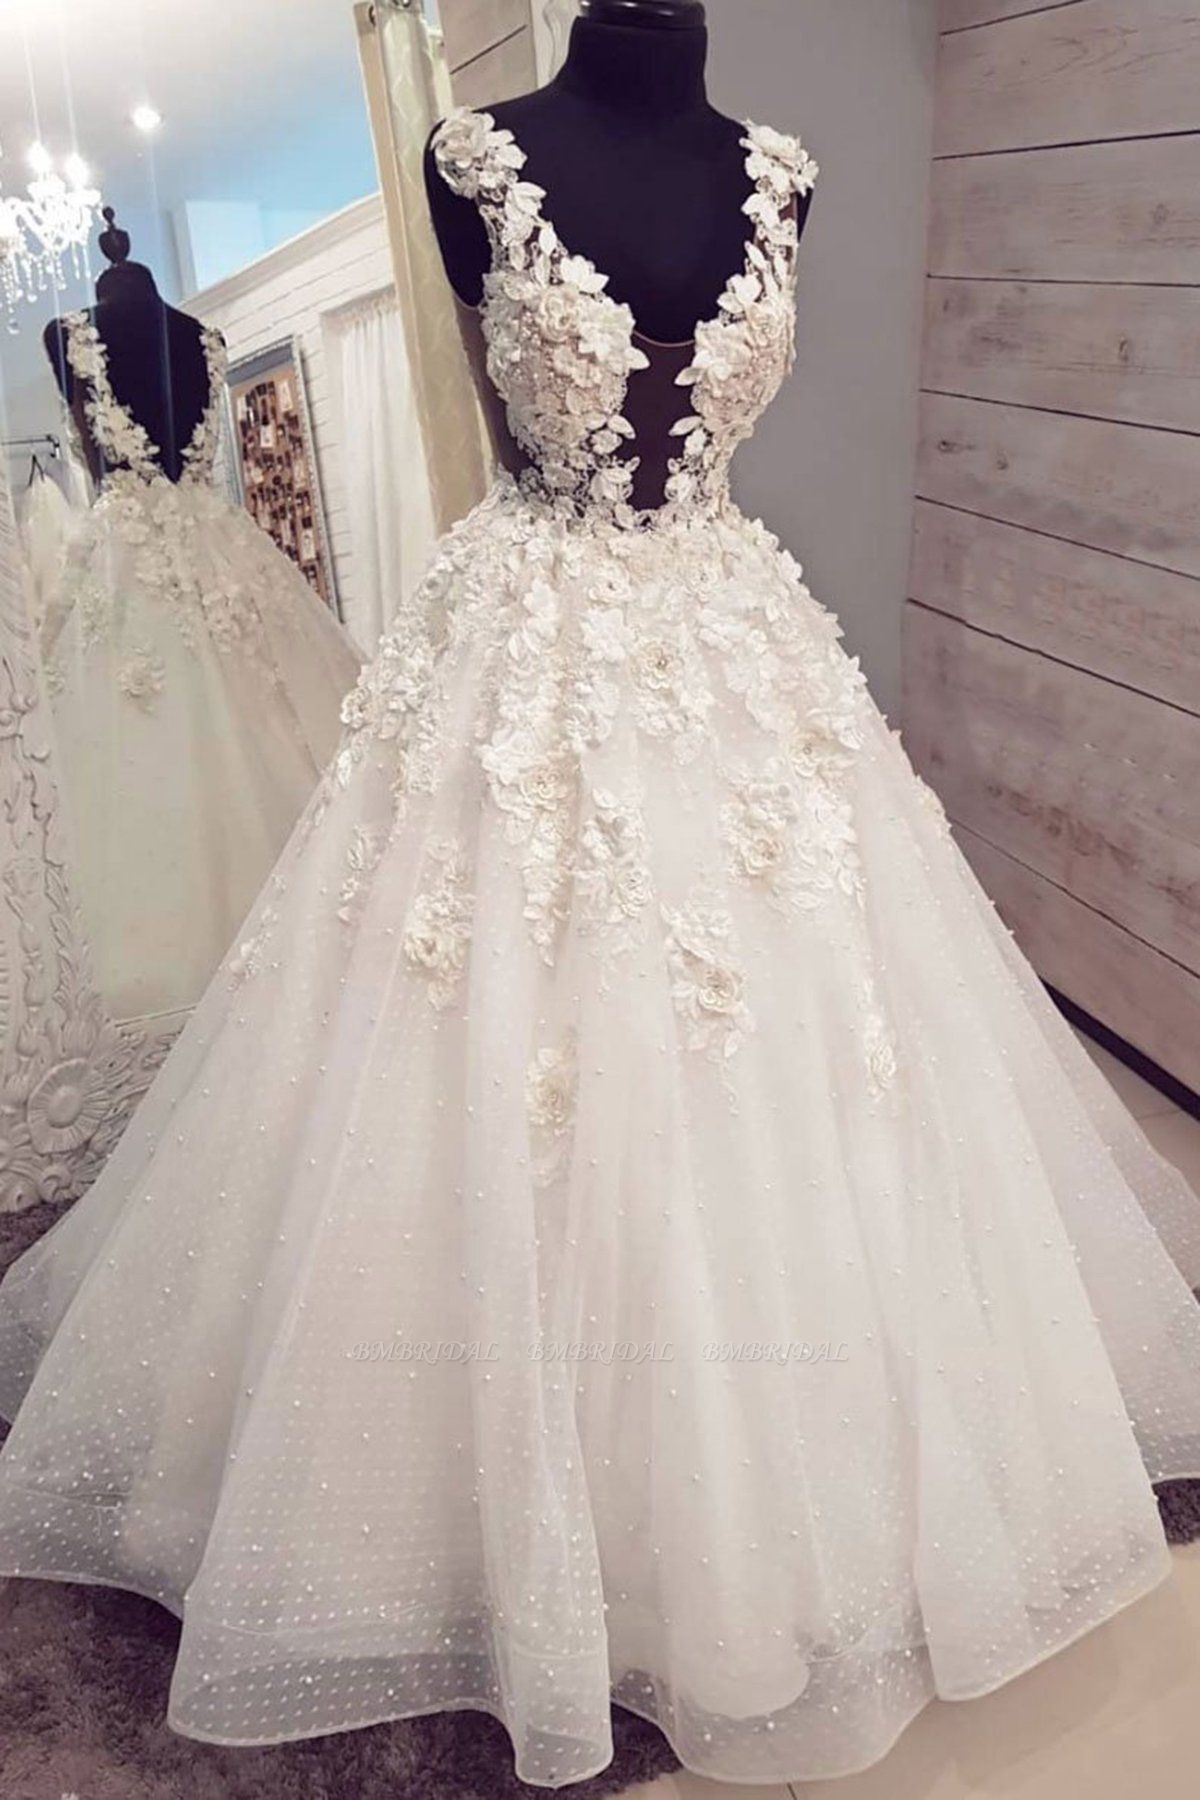 BMbridal Chic White Tulle Long Halter Pearl White Wedding Dress 3D Lace Applique Bridal Gowns On Sale